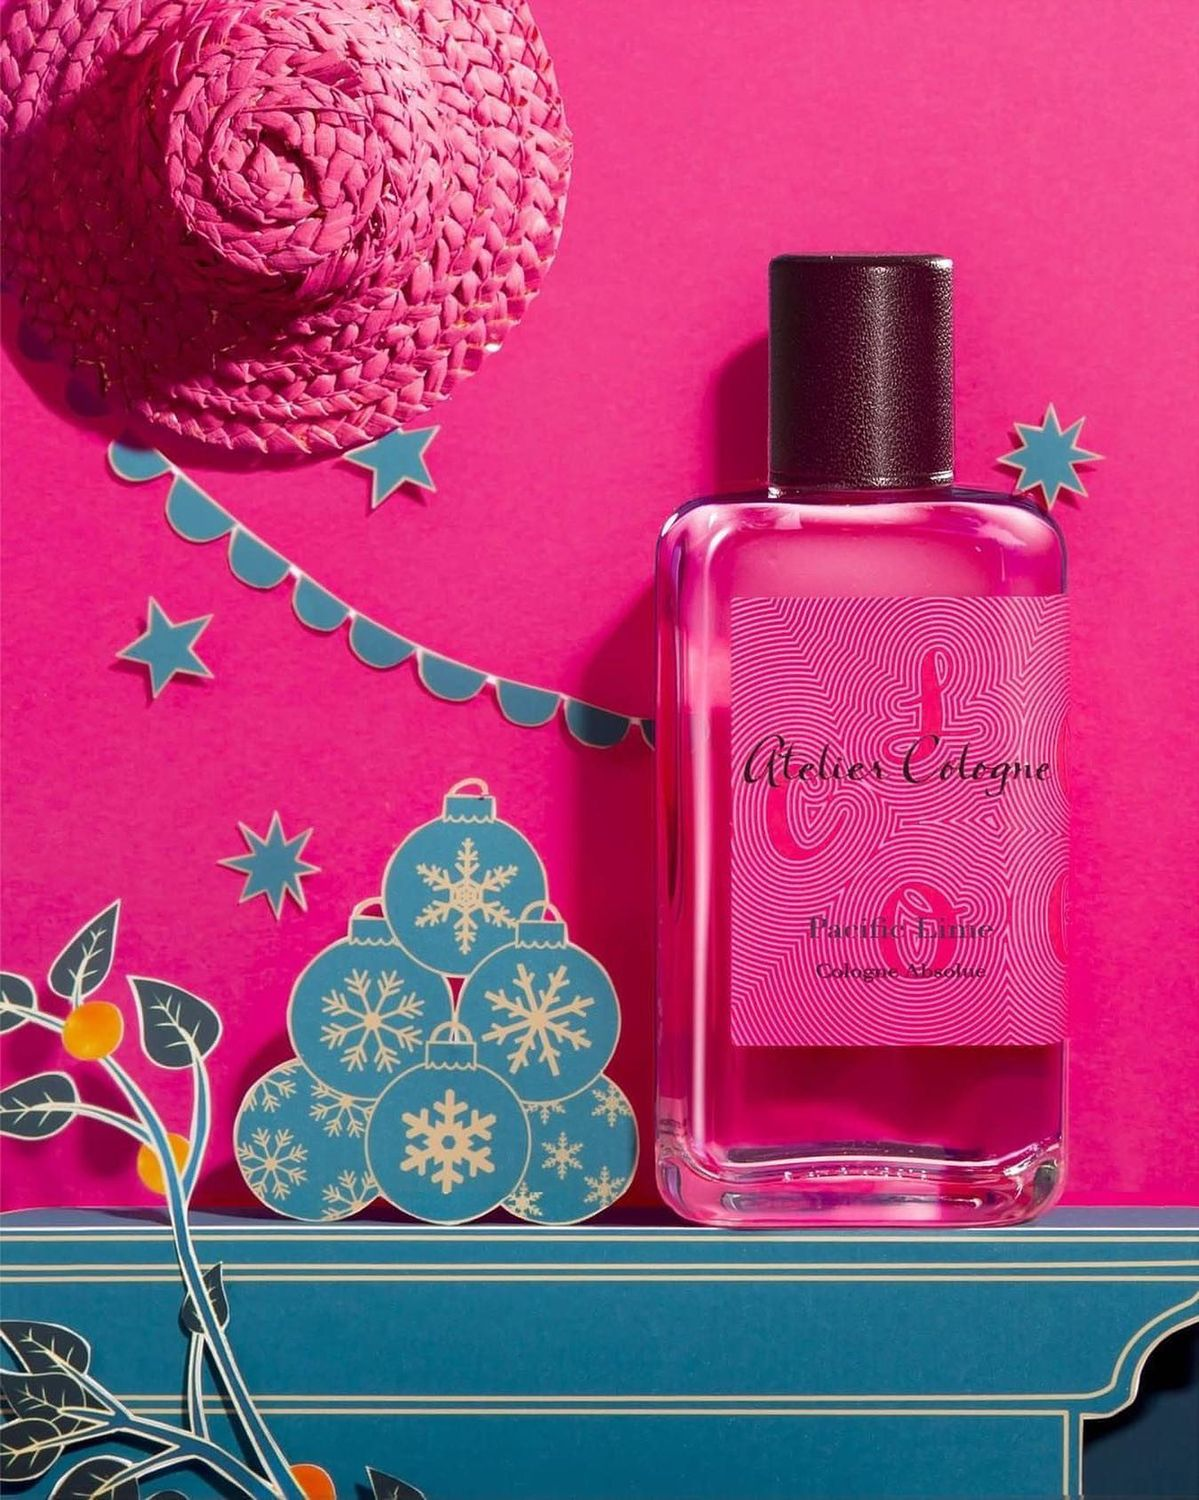 ATELIER COLOGNE Pacific Lime Cologne Absolue Pure Perfume: A tropical burst of juicy lime and cooling eucalyptus sweetened with creamy coconut. Made from 91% renewable natural origin ingredients of the highest quality.